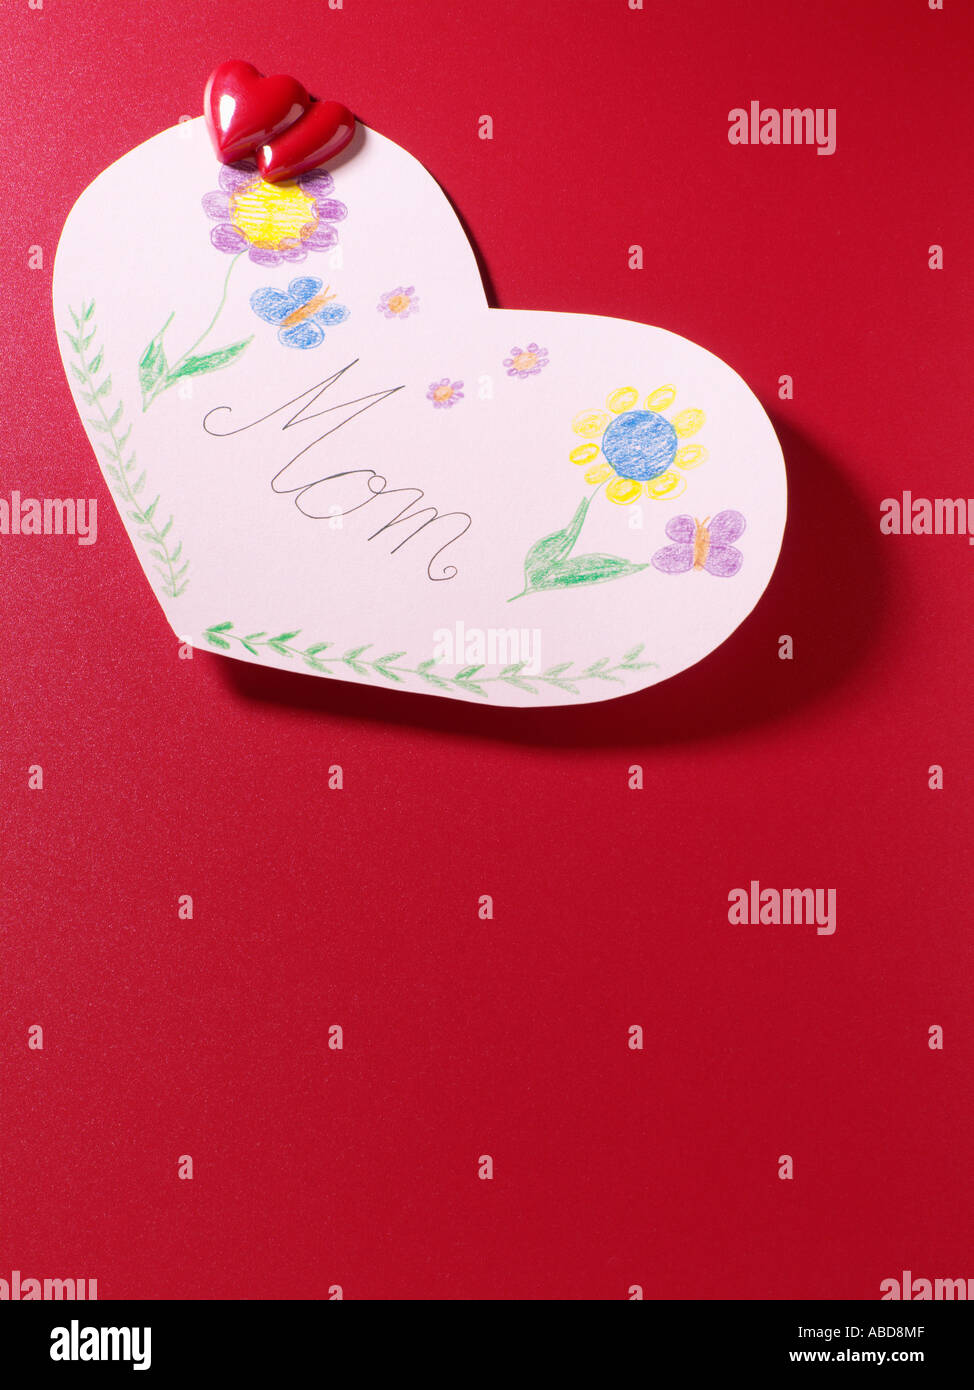 Mothers day card - Stock Image